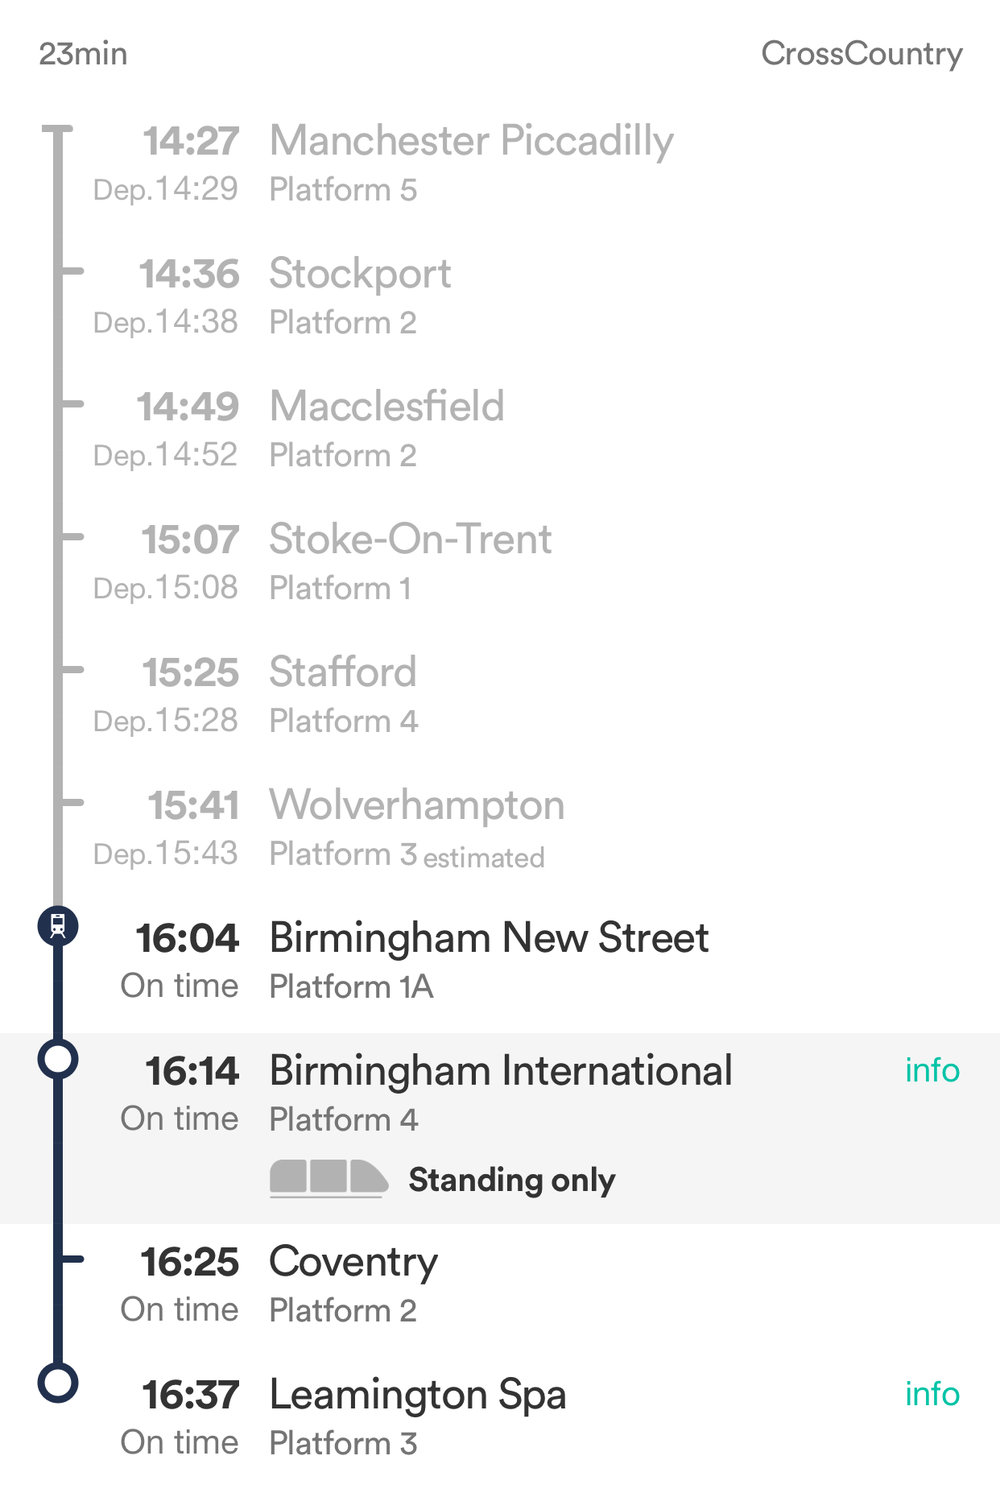 Manchester to Leamington Spa with no changes